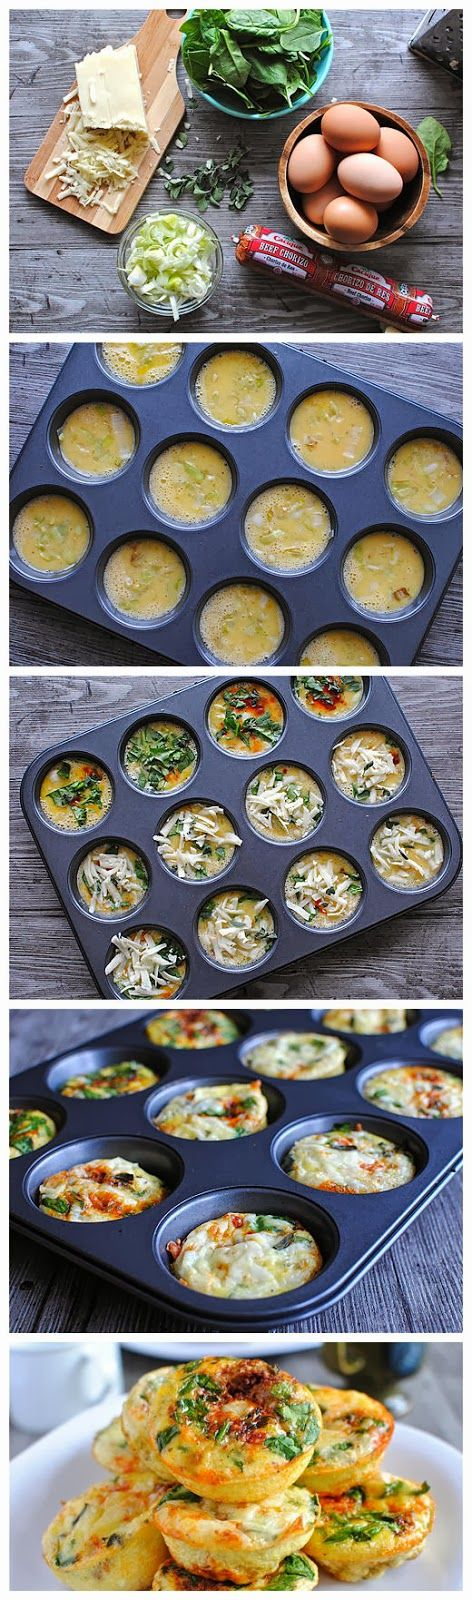 Mini Frittata Brunch Bar